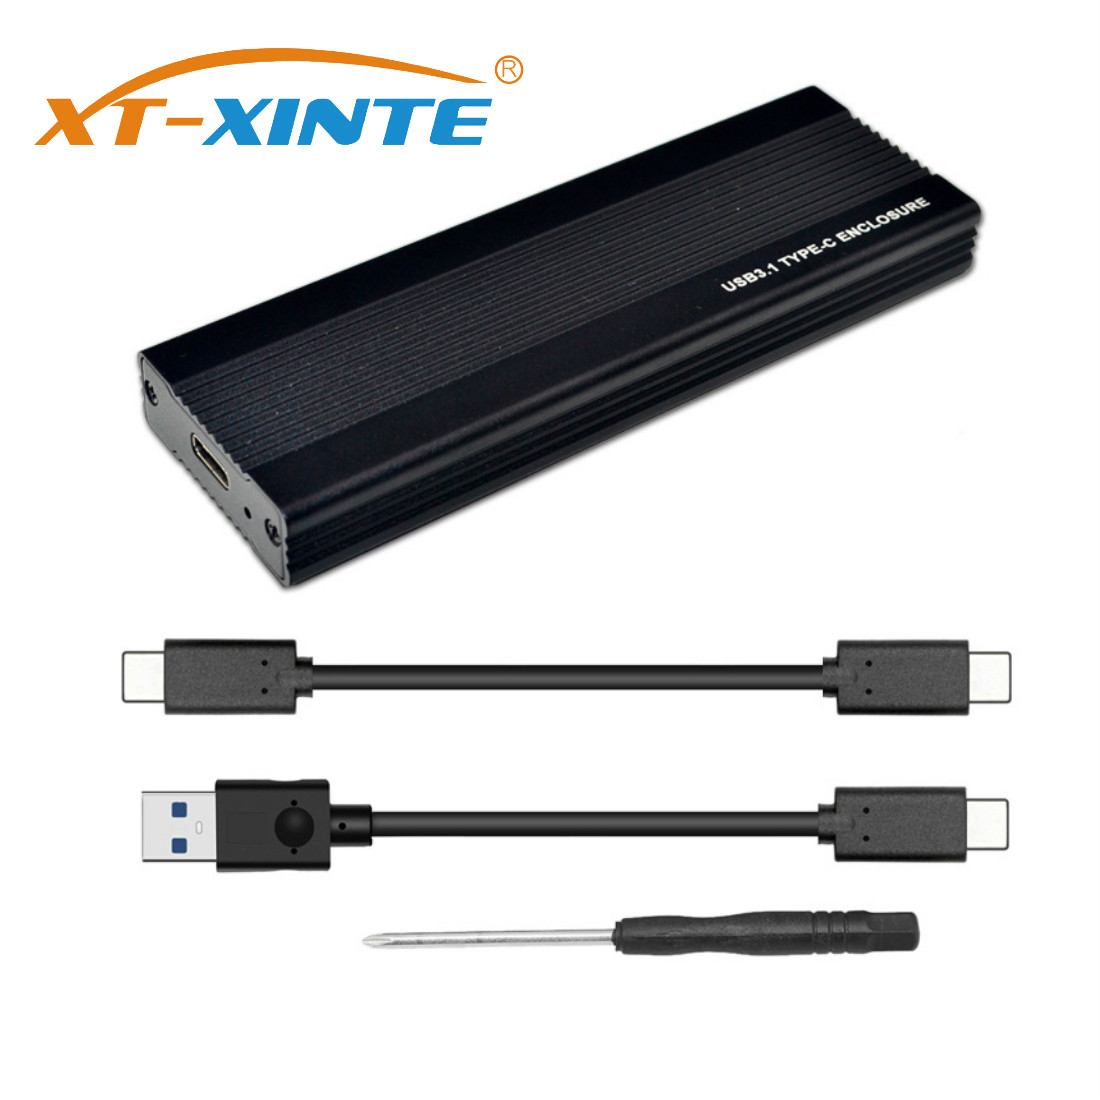 XT-XINTE NVME SSD Enclosure PCI-E M.2 To USB 3.1 Type-C Adapter USB C 10Gbps RTL9210 M2 M Key PCIE Hard Drive Disk External Box